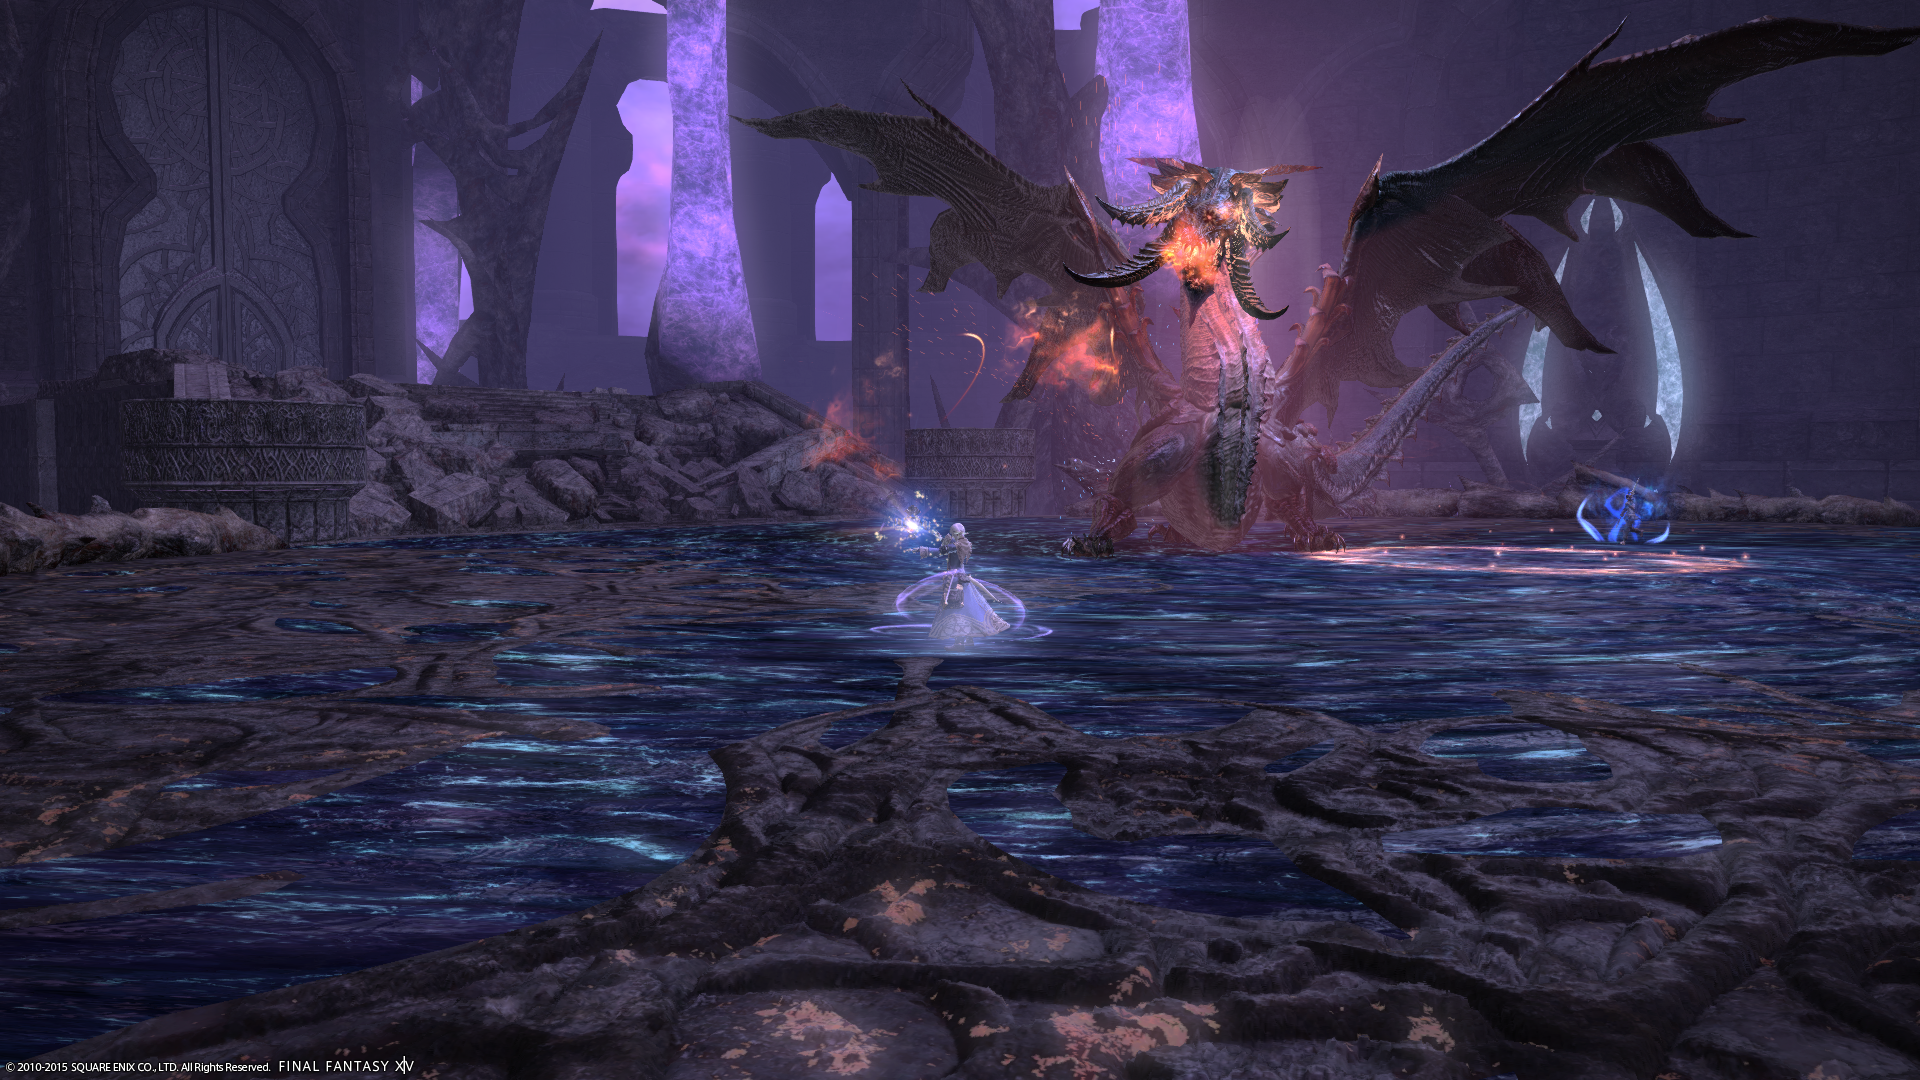 FINAL FANTASY XIV: Heavensward Location of Daily Hunt Monsters in